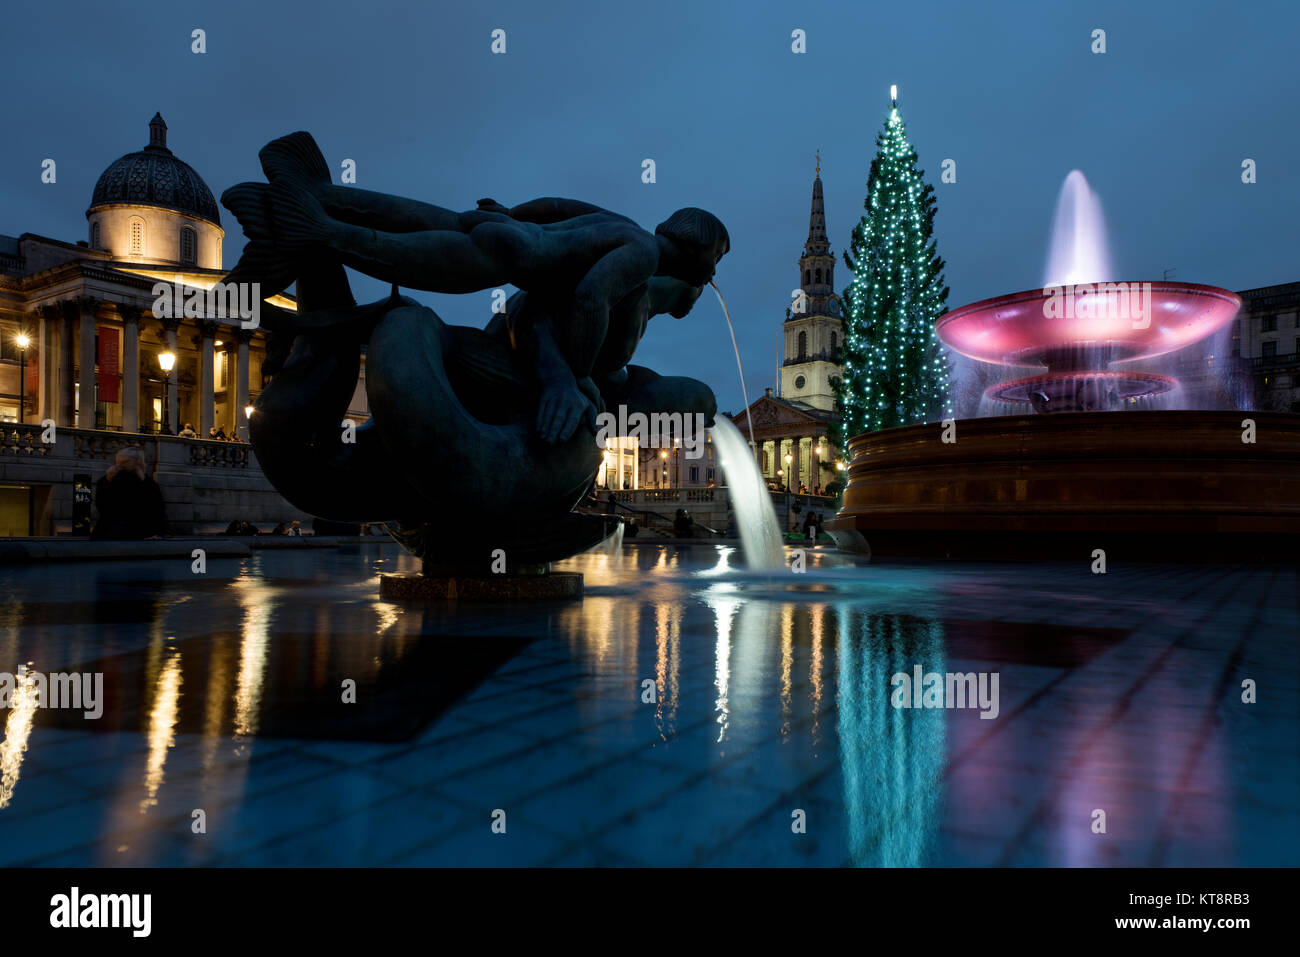 London, UK. 21st December, 2017. The Trafalgar Square Christmas tree is a Christmas tree donated to the people of - Stock Image